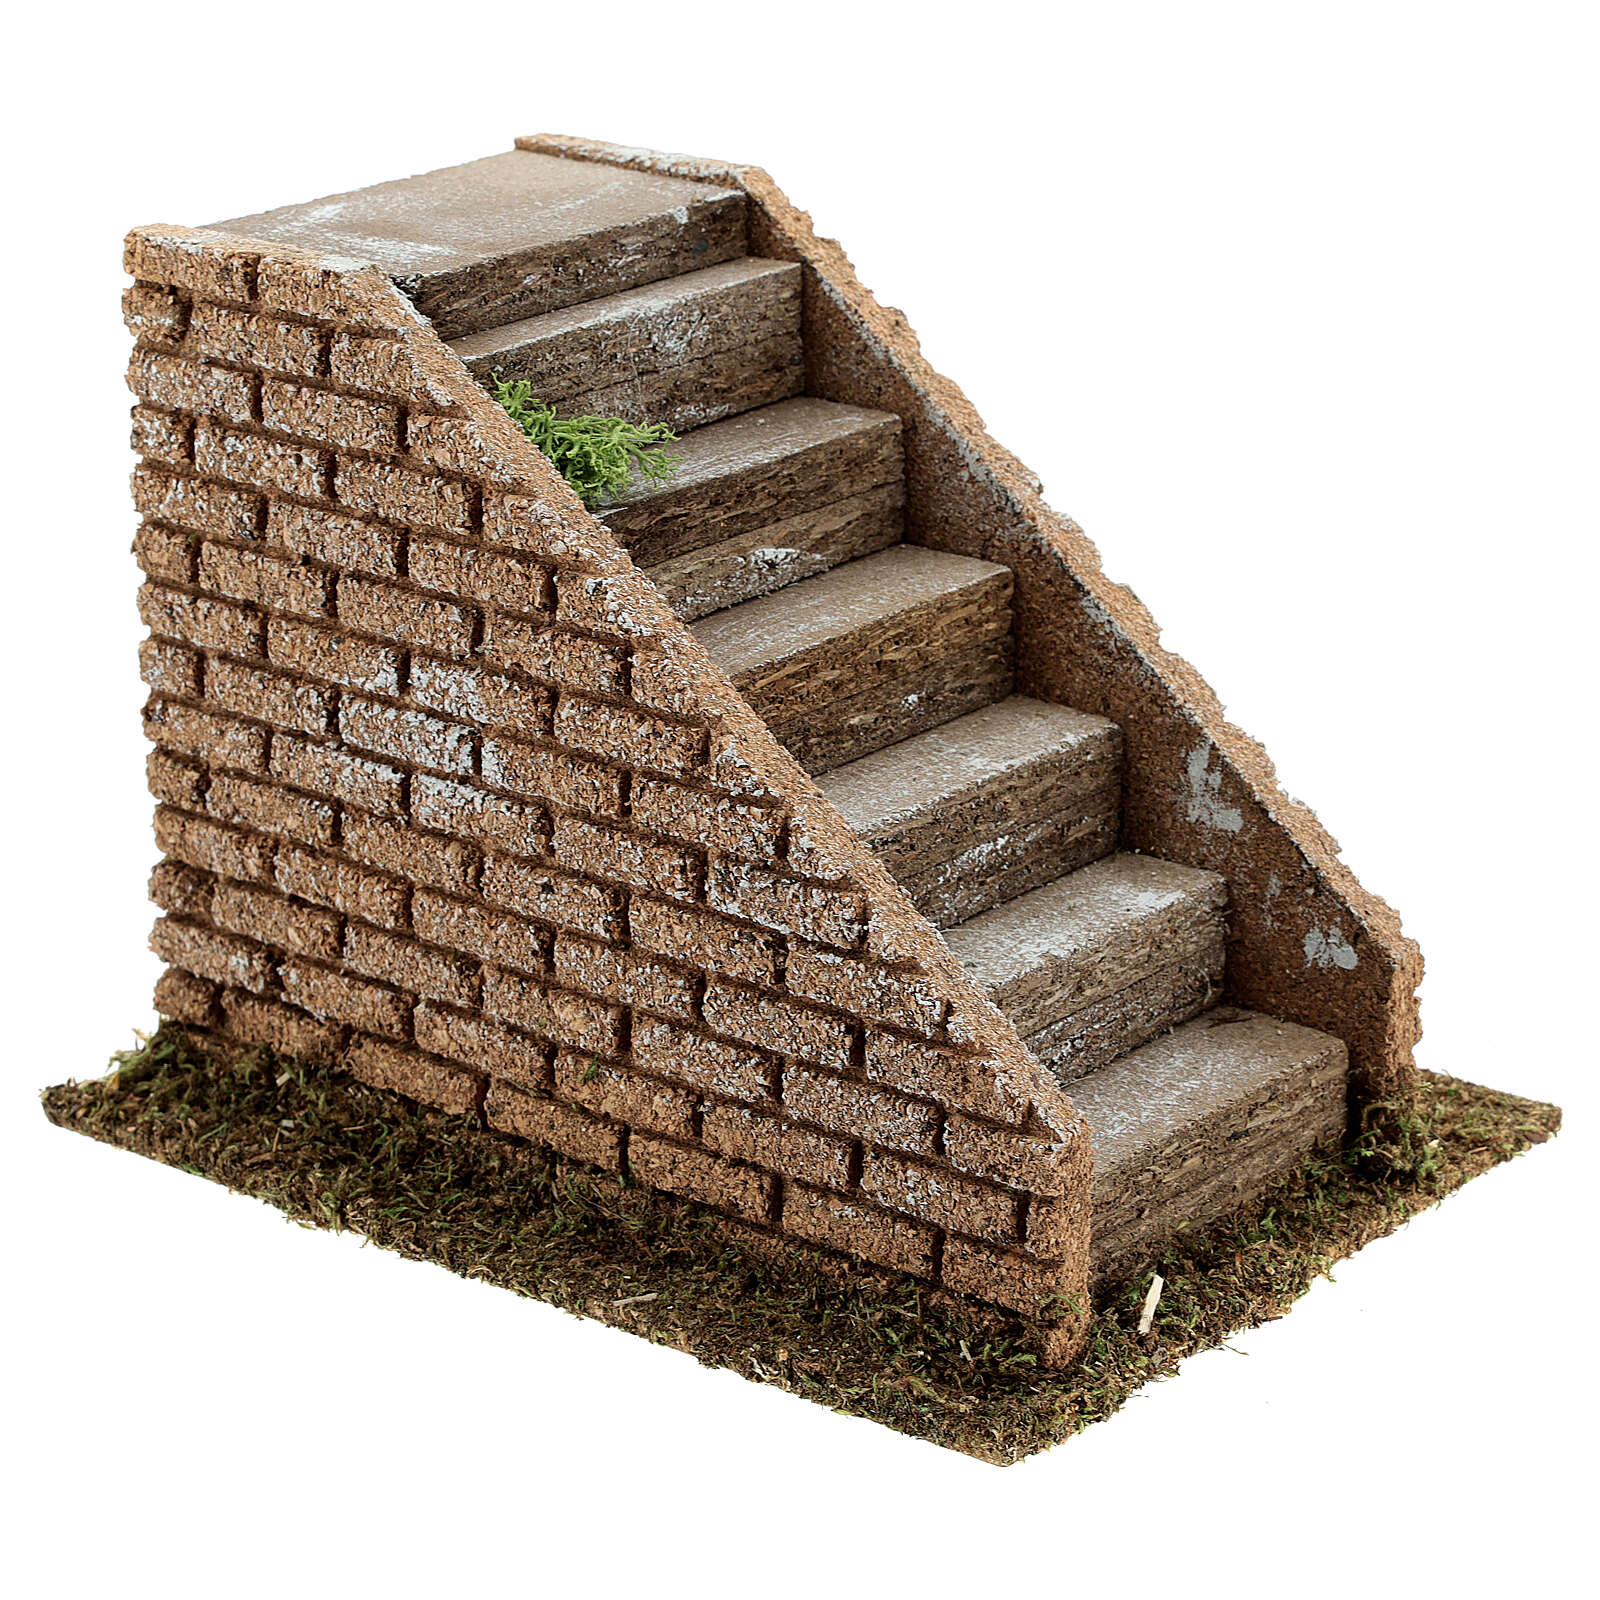 Staircase with steps in masonry nativity scenes 8-12 cm 16x20x15 cm 4